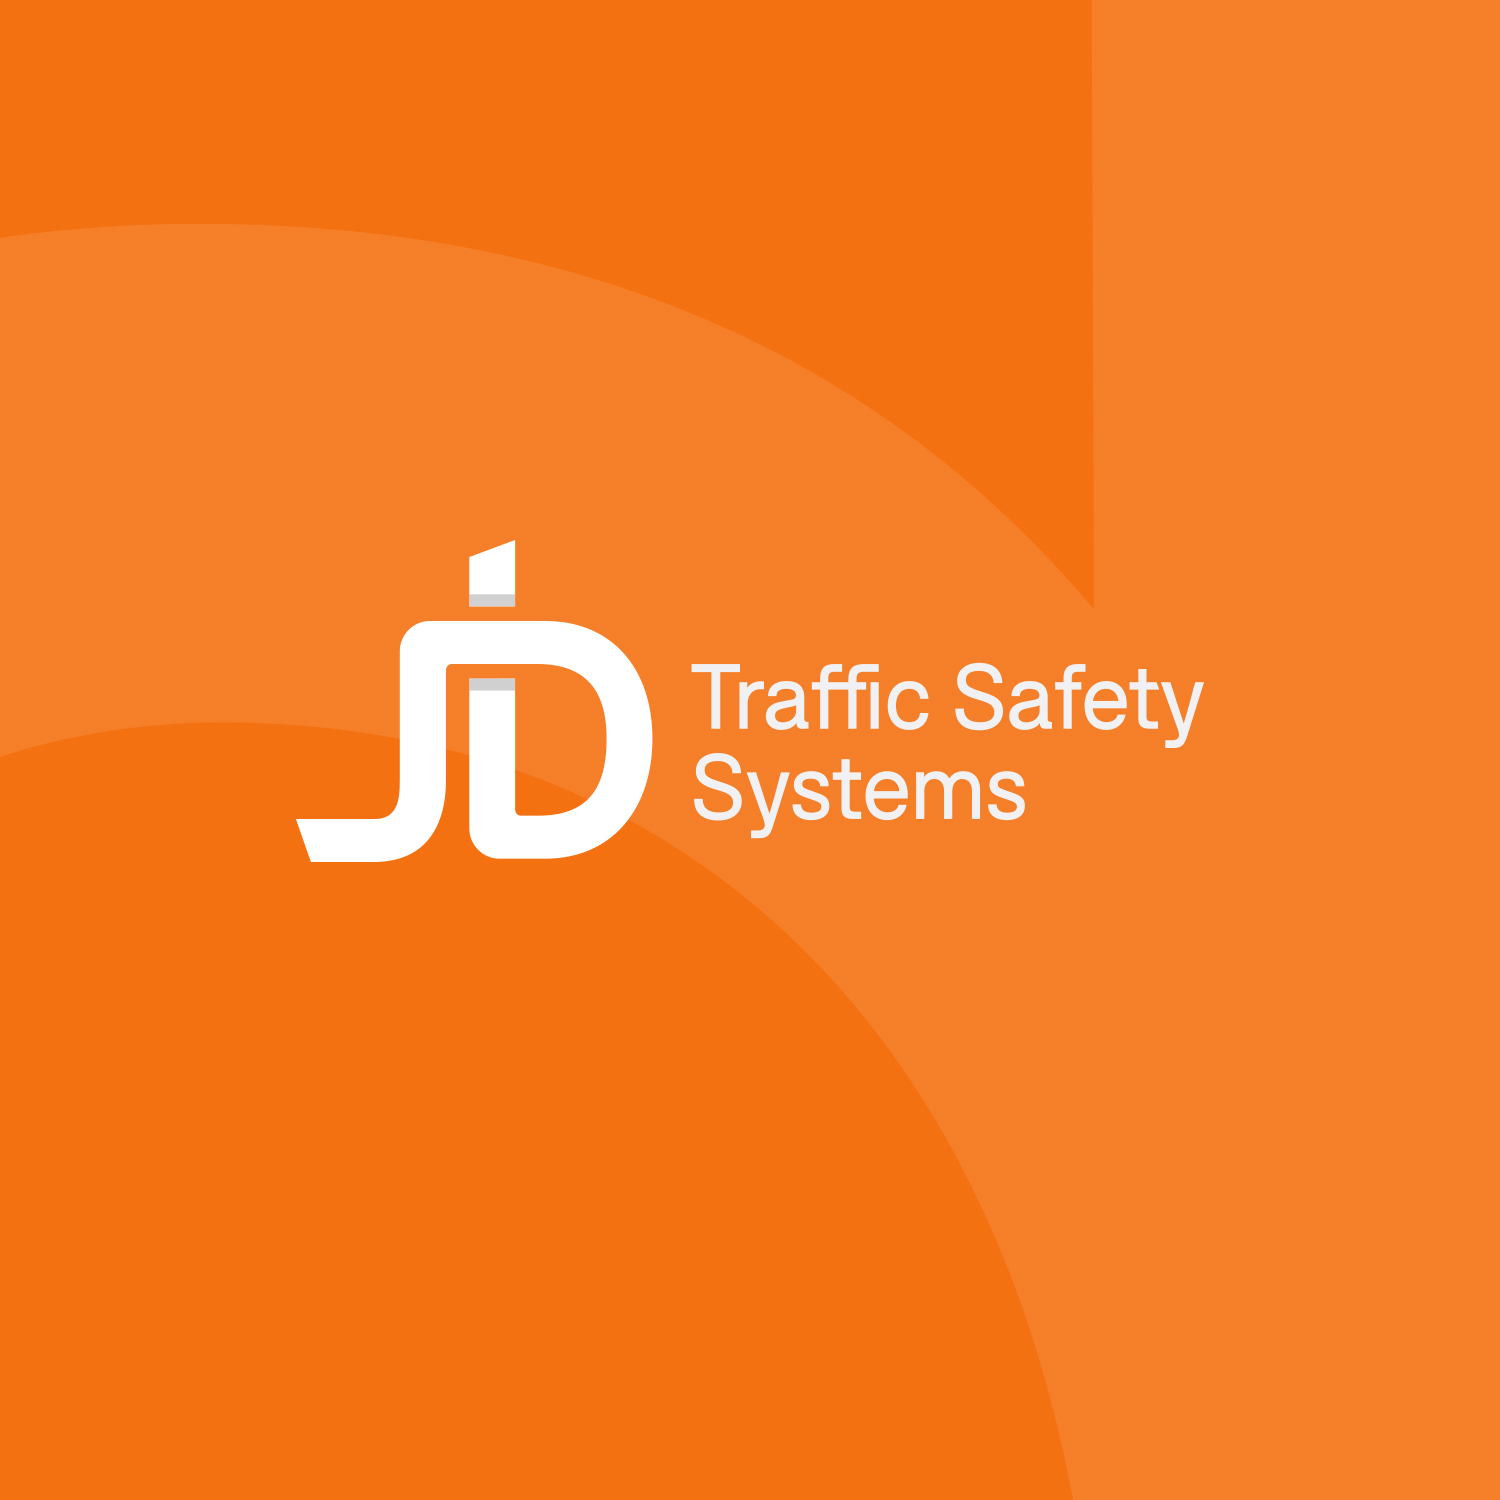 JD Traffic Safety Systems -